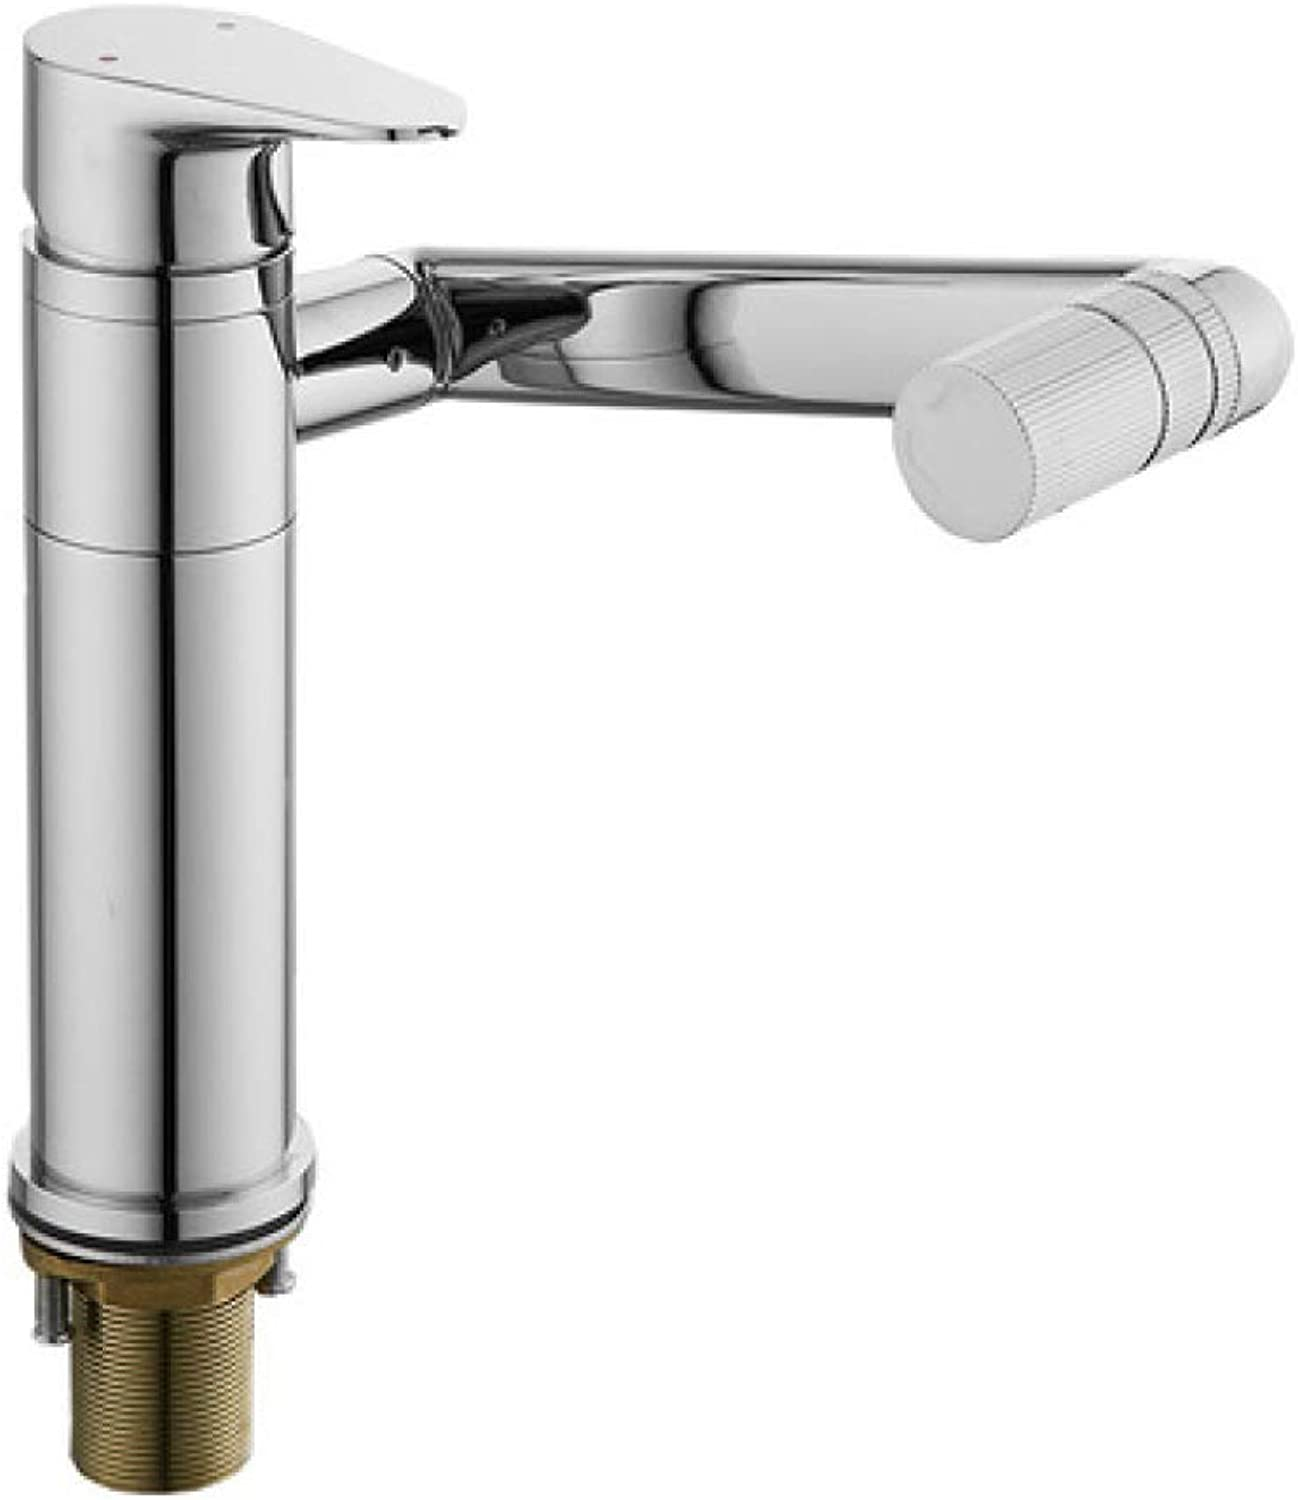 PYIP Water Filter Taps Copper Hot And Cold Basin Heightening redatable Bathroom Toilet Sink Basin Faucet Seat Diameter  3.2Cm